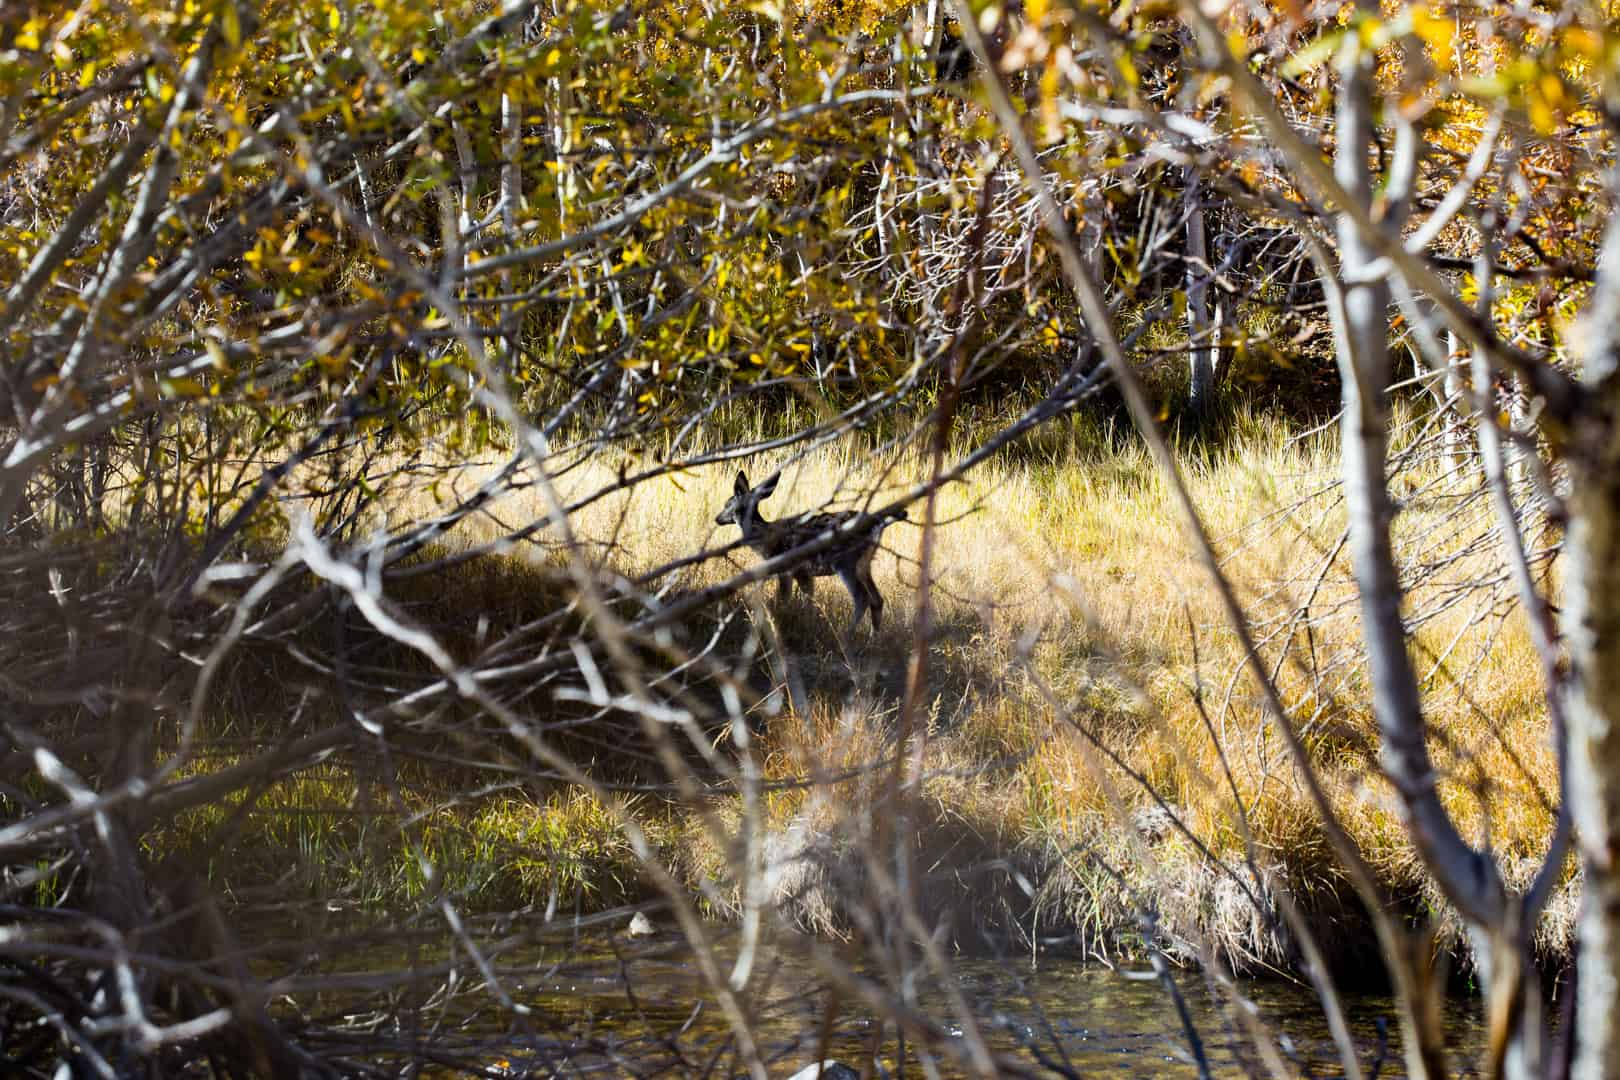 Fawn, Convict Creek, October 2015